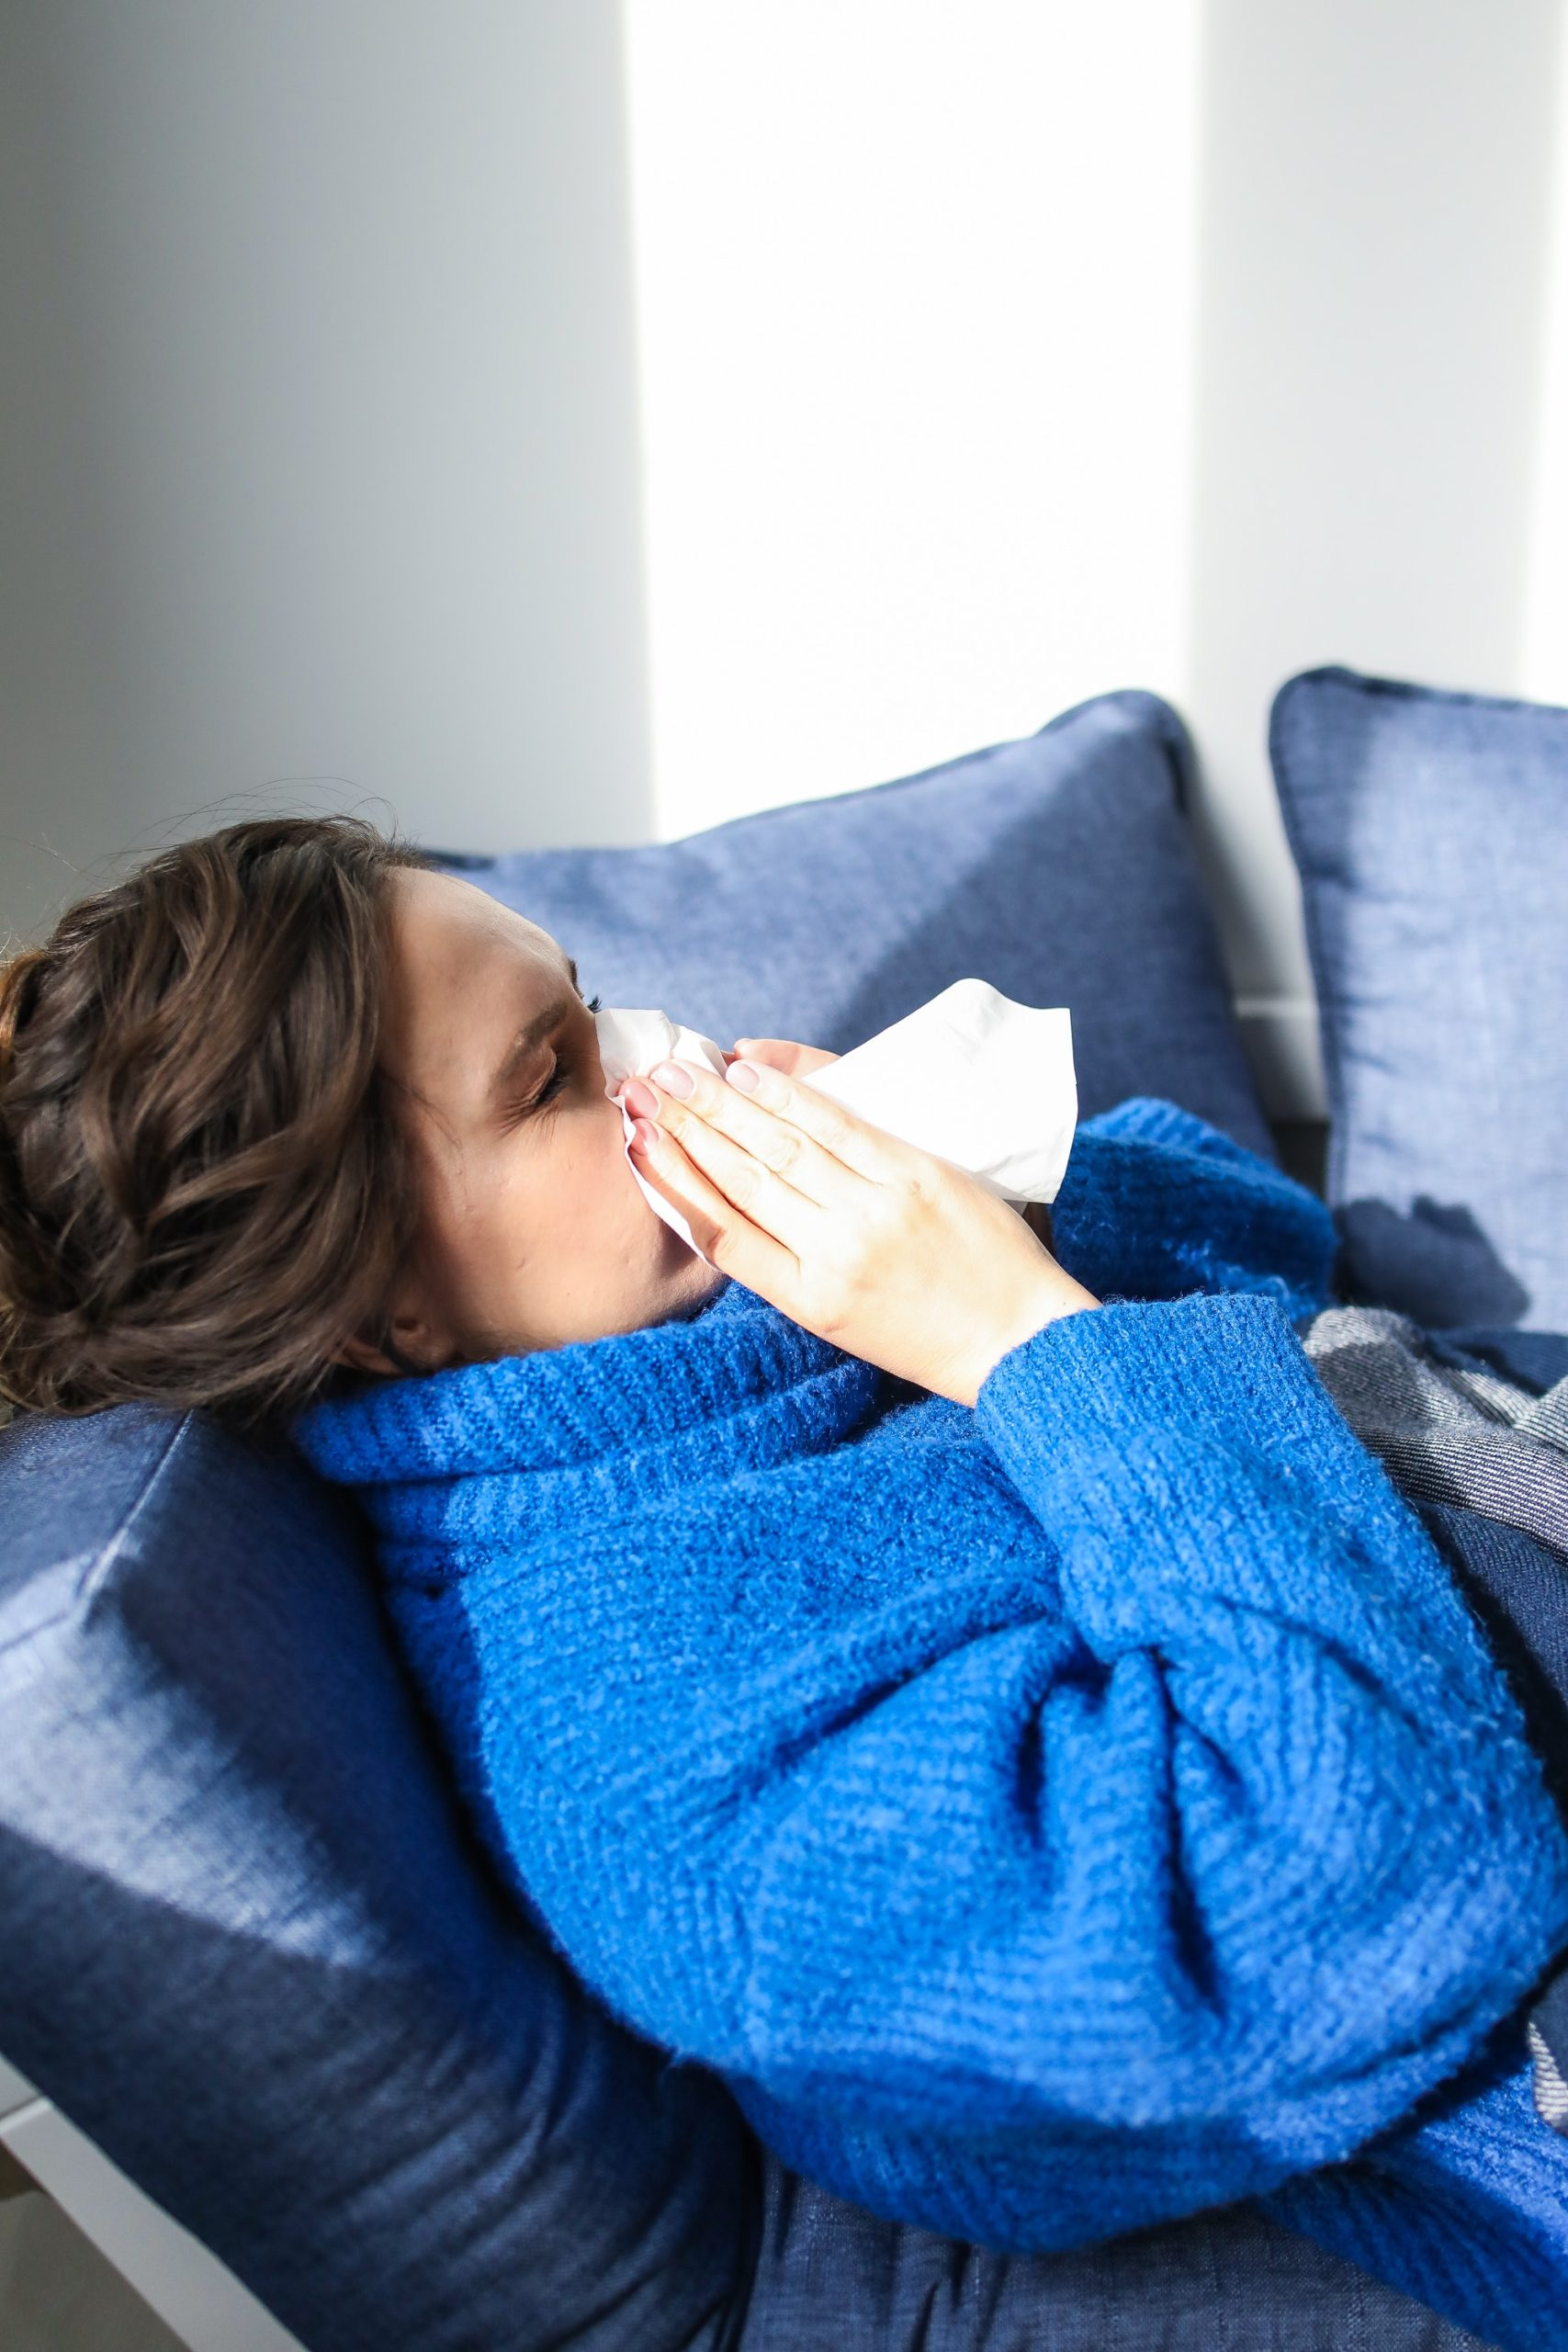 Woman in blue sweater blowing nose into a tissue